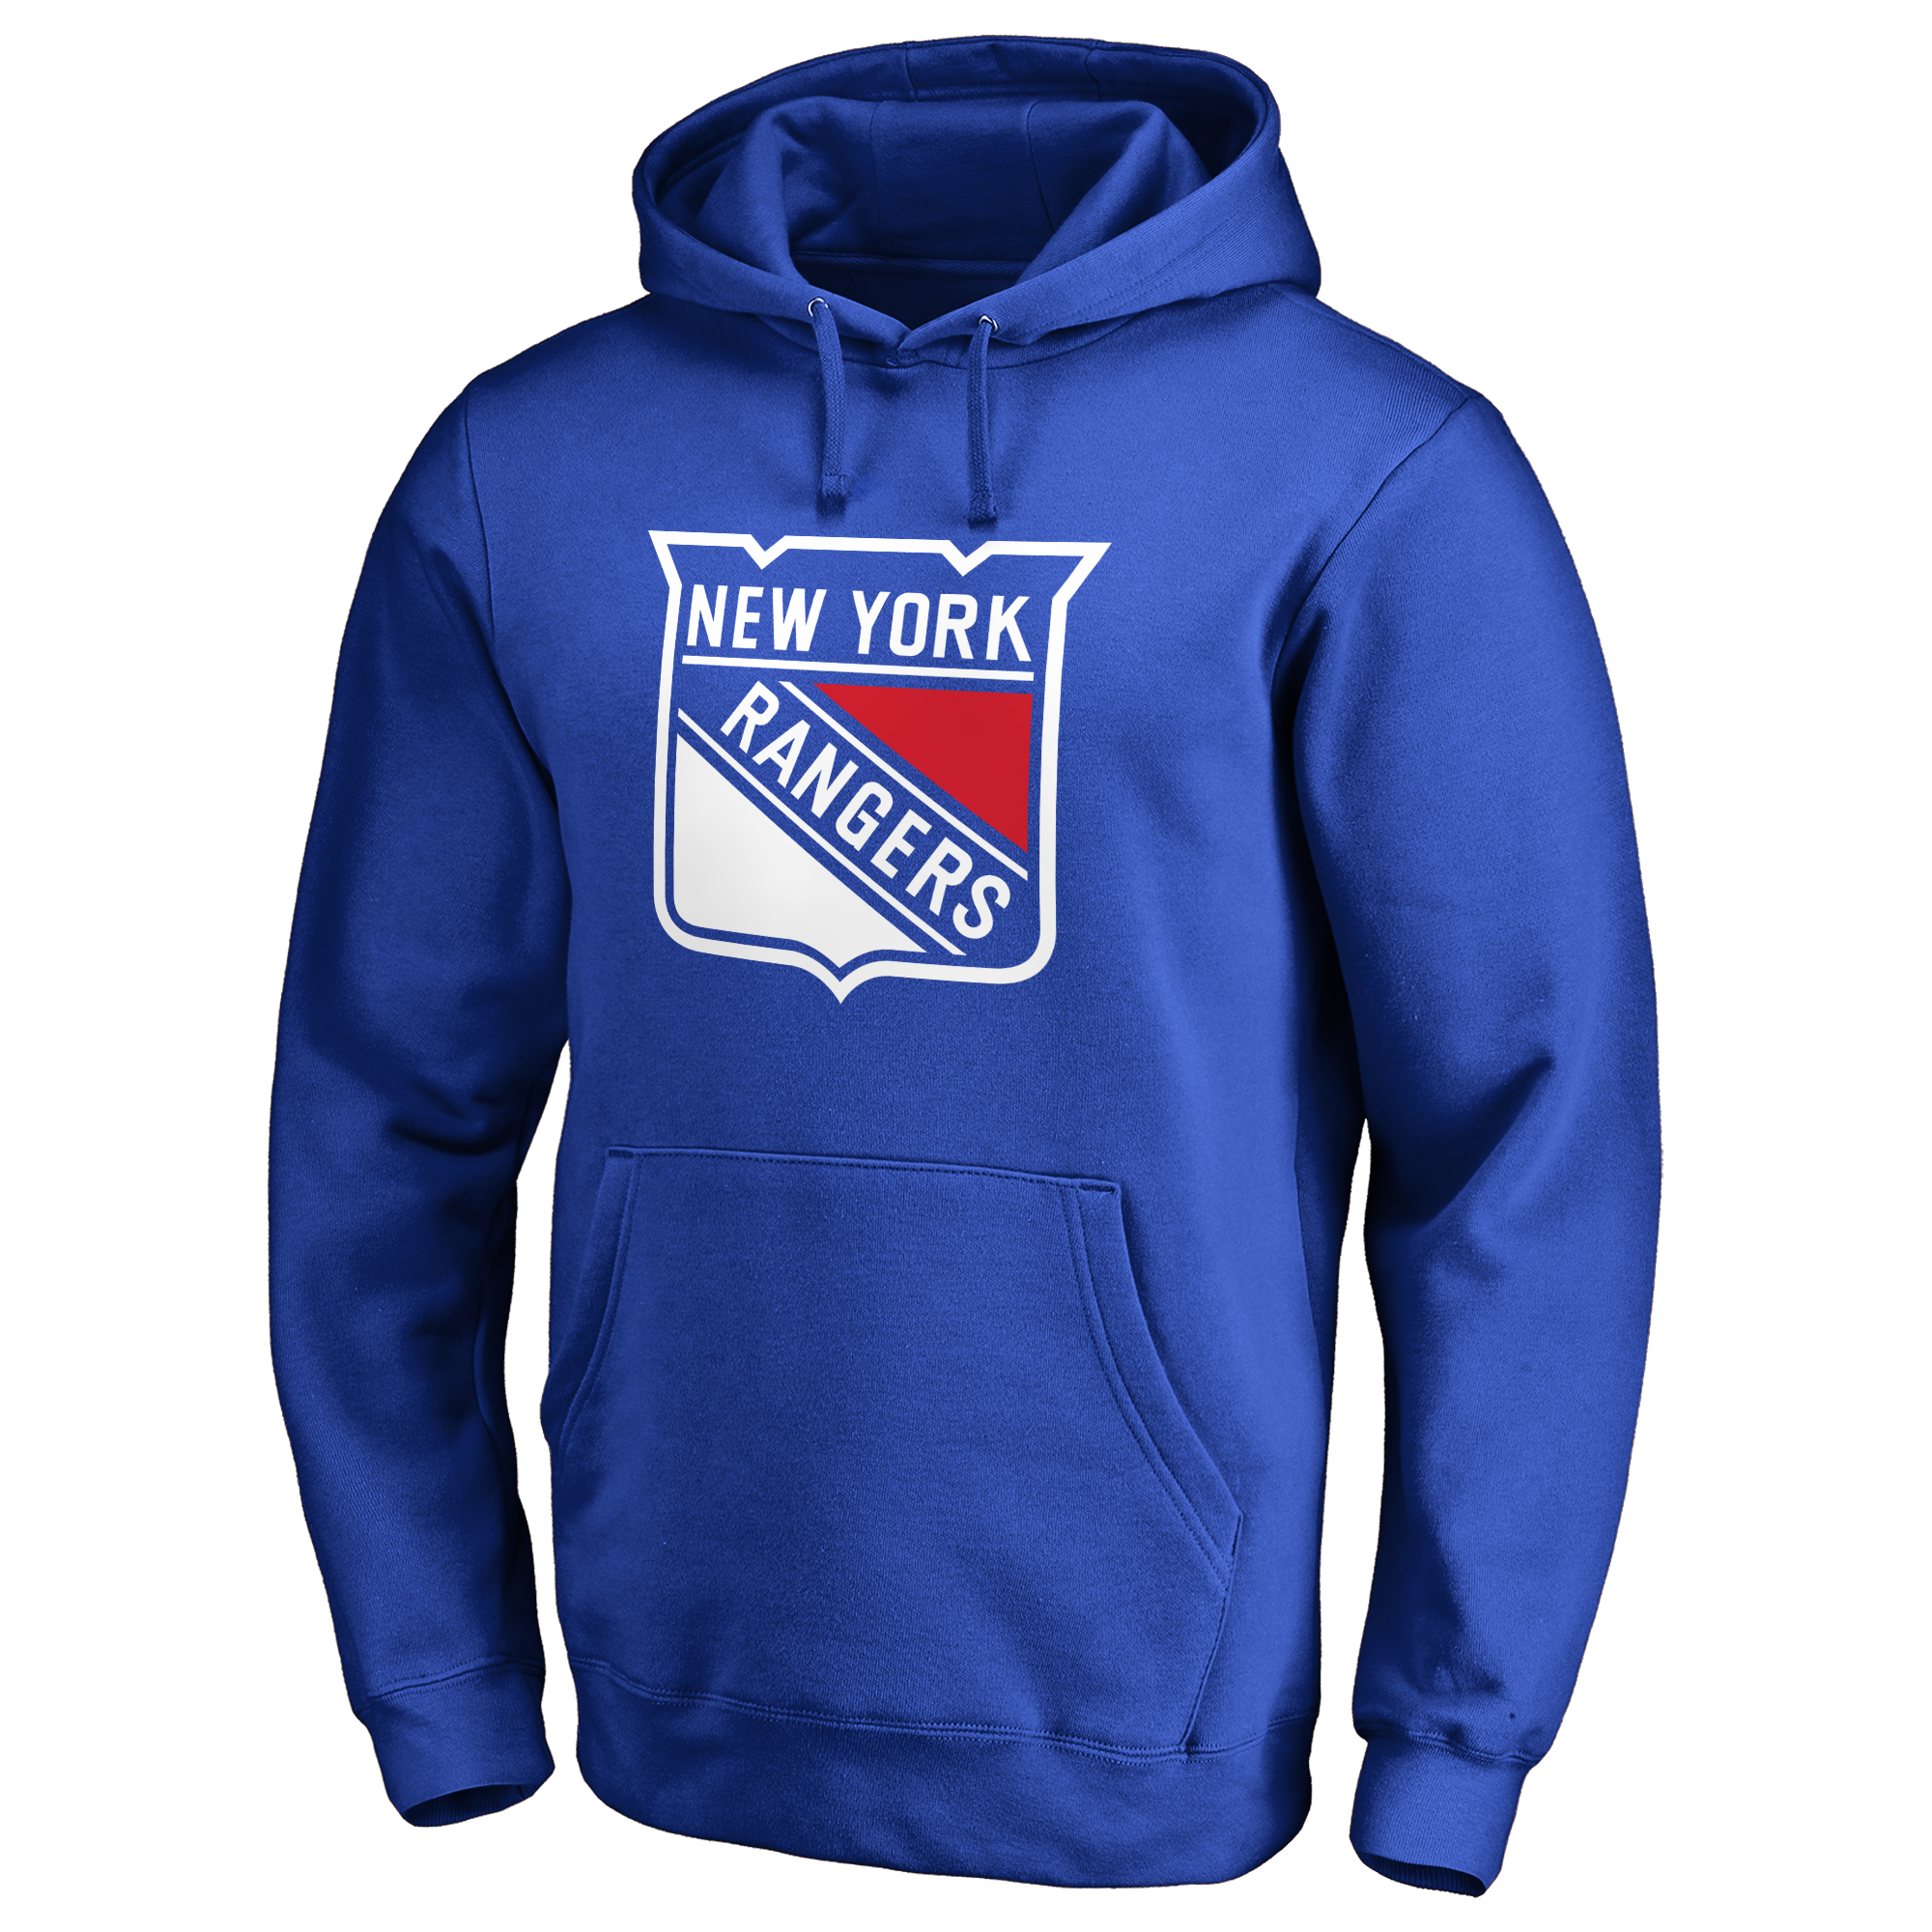 6145a5a5f New York Rangers Fanatics Branded Number One Dad Pullover Hoodie - Royal -  Walmart.com